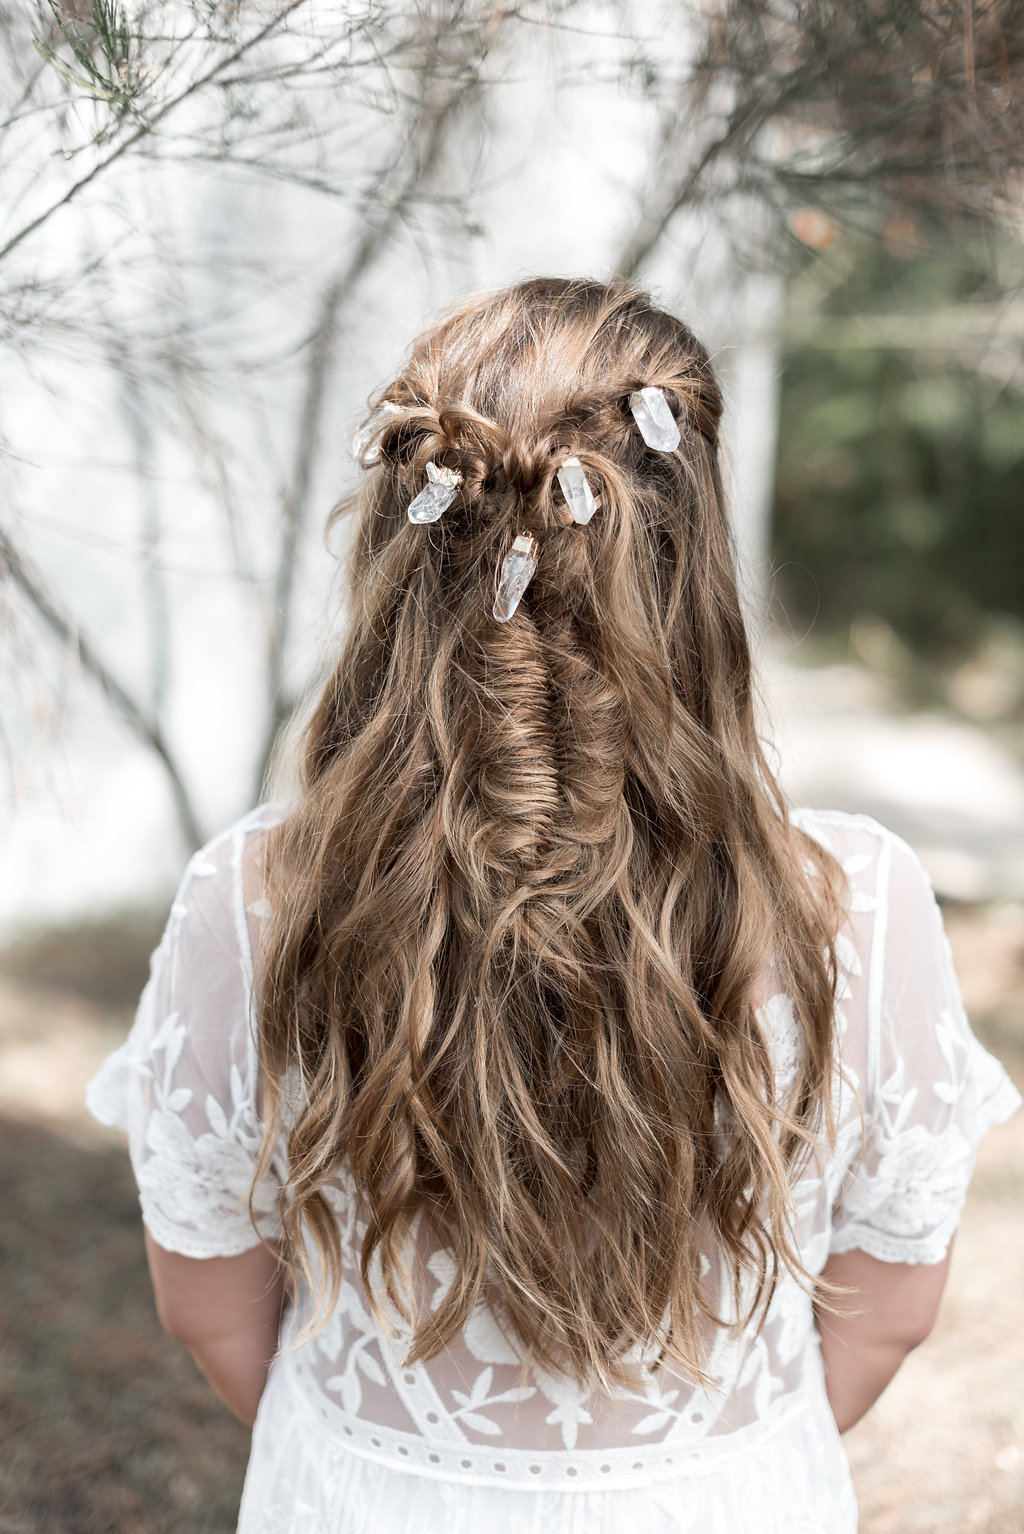 hairstyle pour amelie photo mariage chloe fayollas capferret sud ouest france